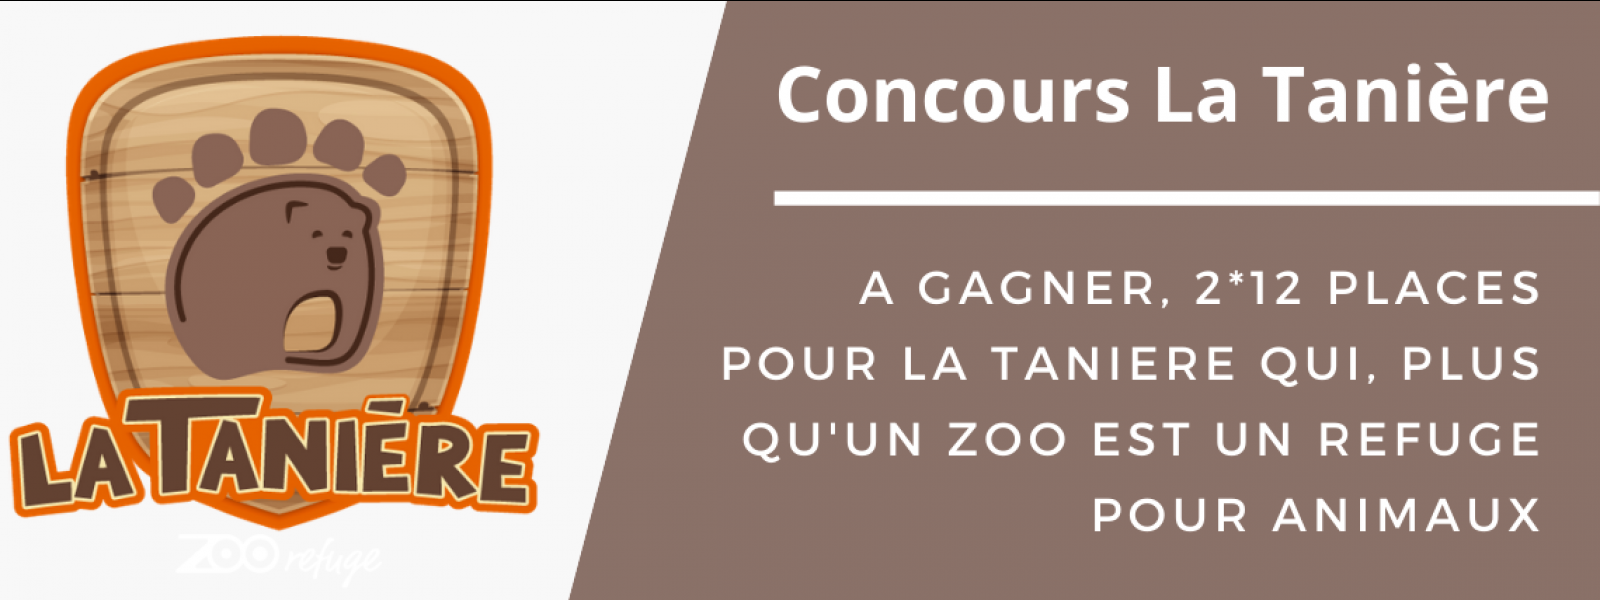 TANIERE CONCOURS REFUGE ANIMAUX